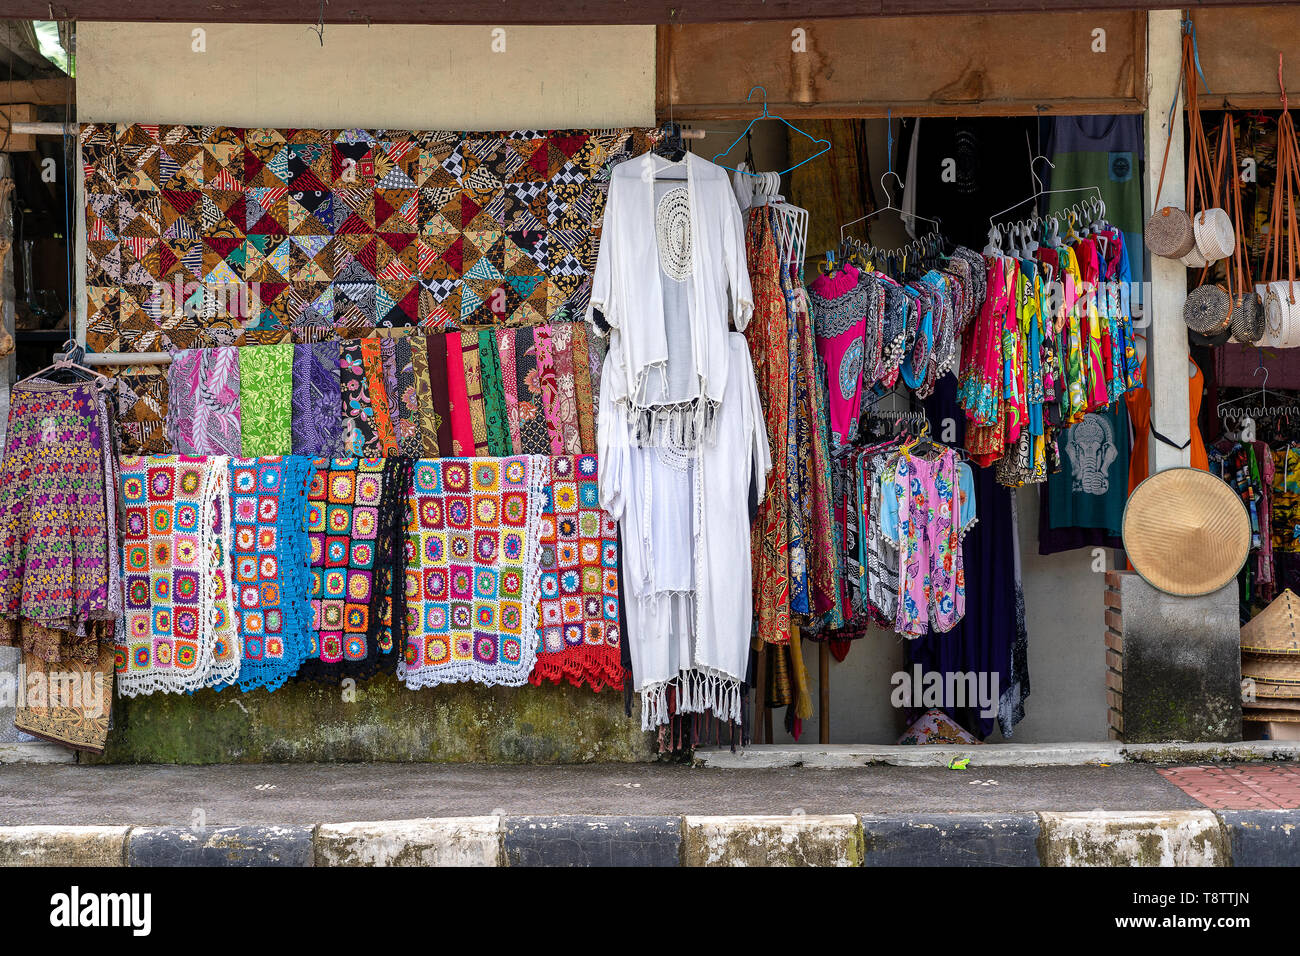 Street clothes shop and souvenirs, close up. Ubud, Island Bali, Indonesia. Indonesian street market - Stock Image